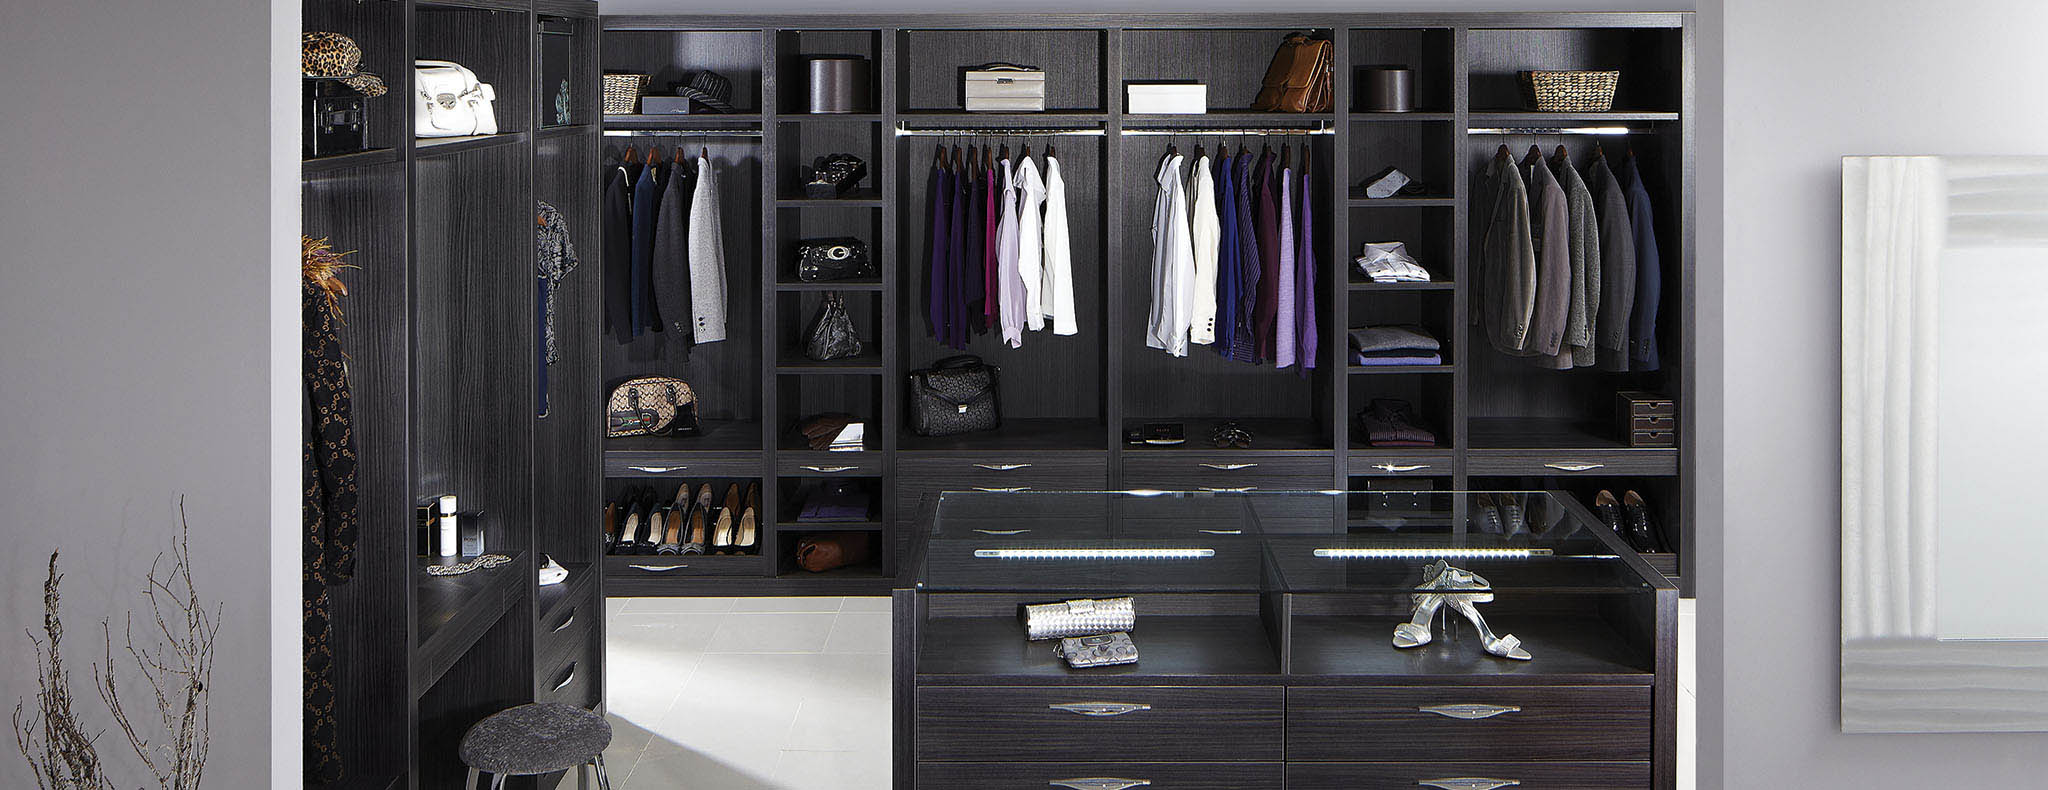 Ultimo aura dressing room furniture by strachan - Black and white dressing room ...